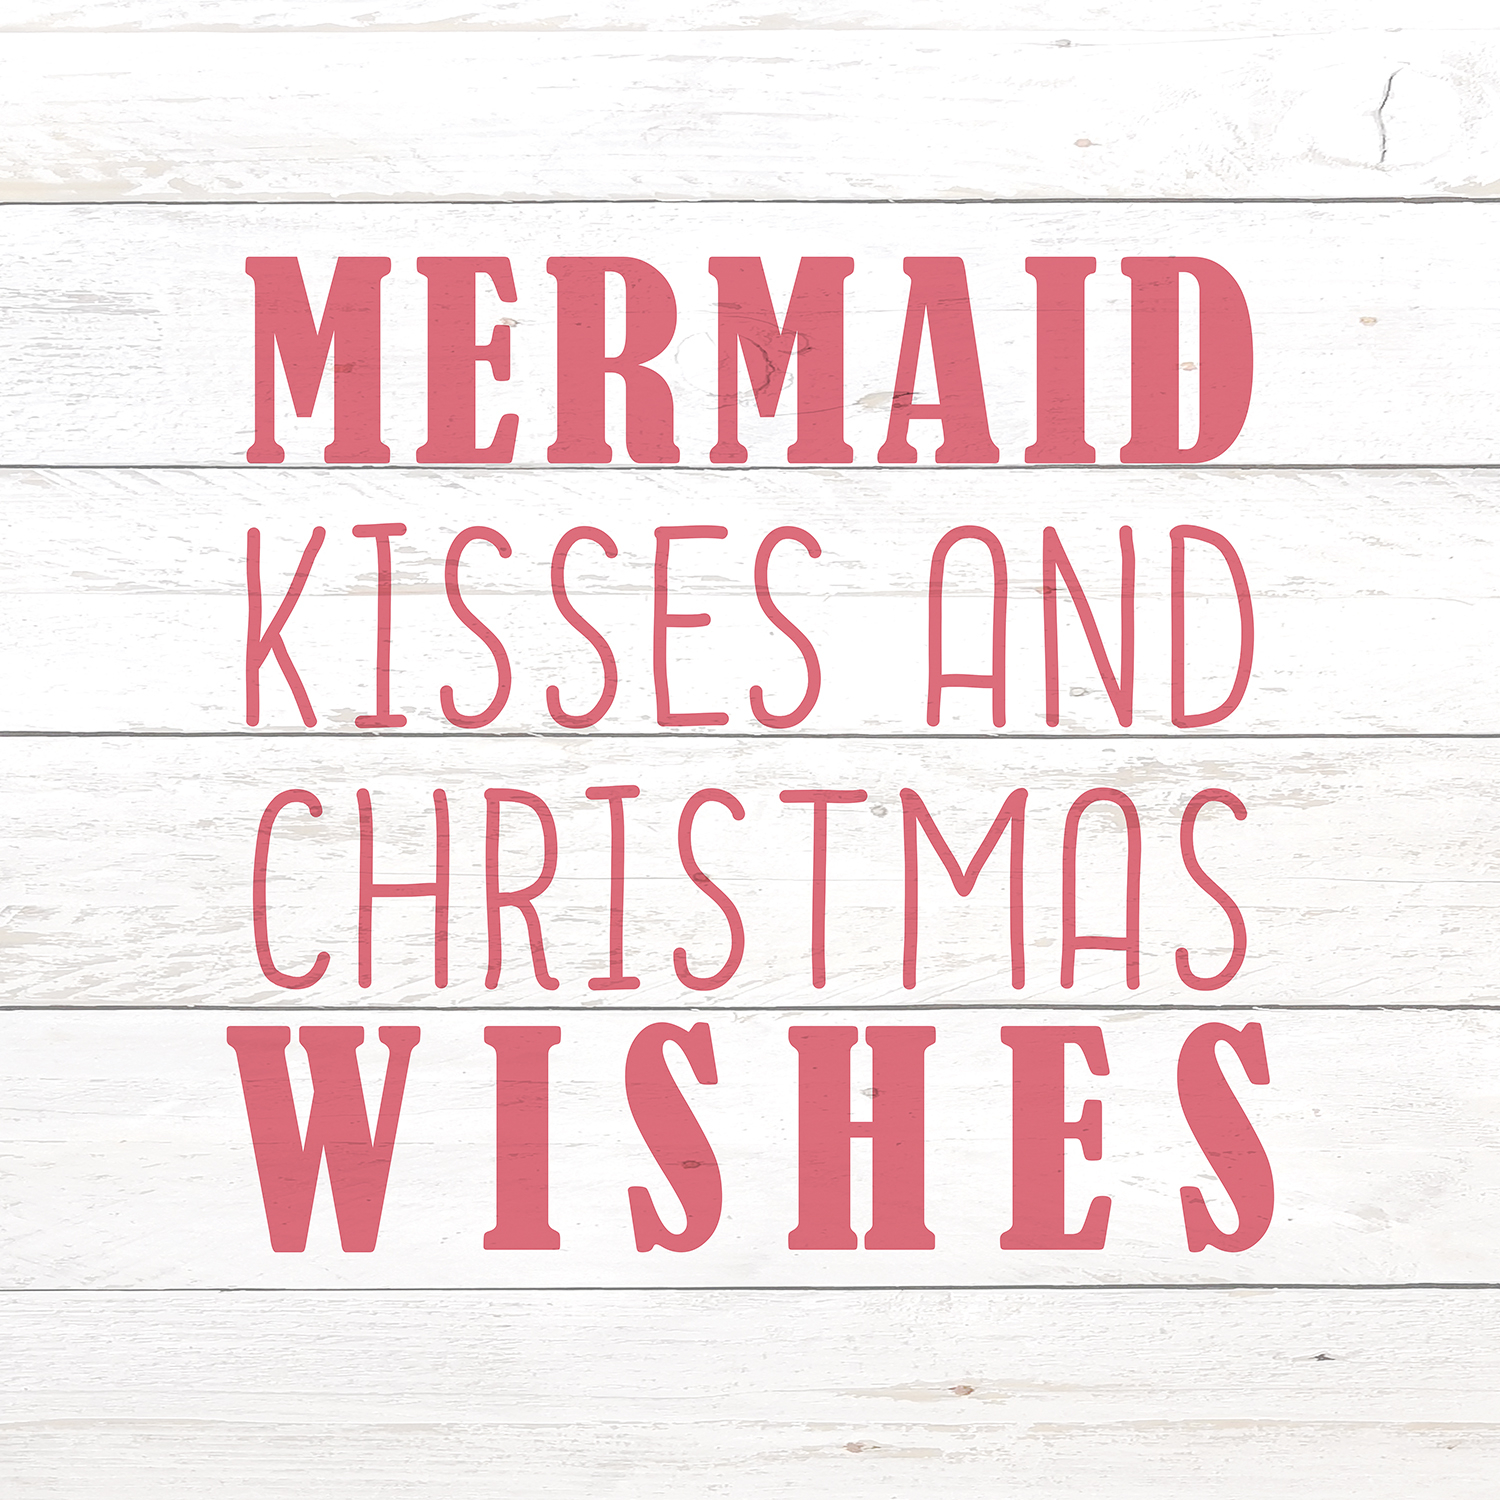 """Typography in red that says """"Mermaid kisses and Christmas wishes"""" on a white shiplap background"""